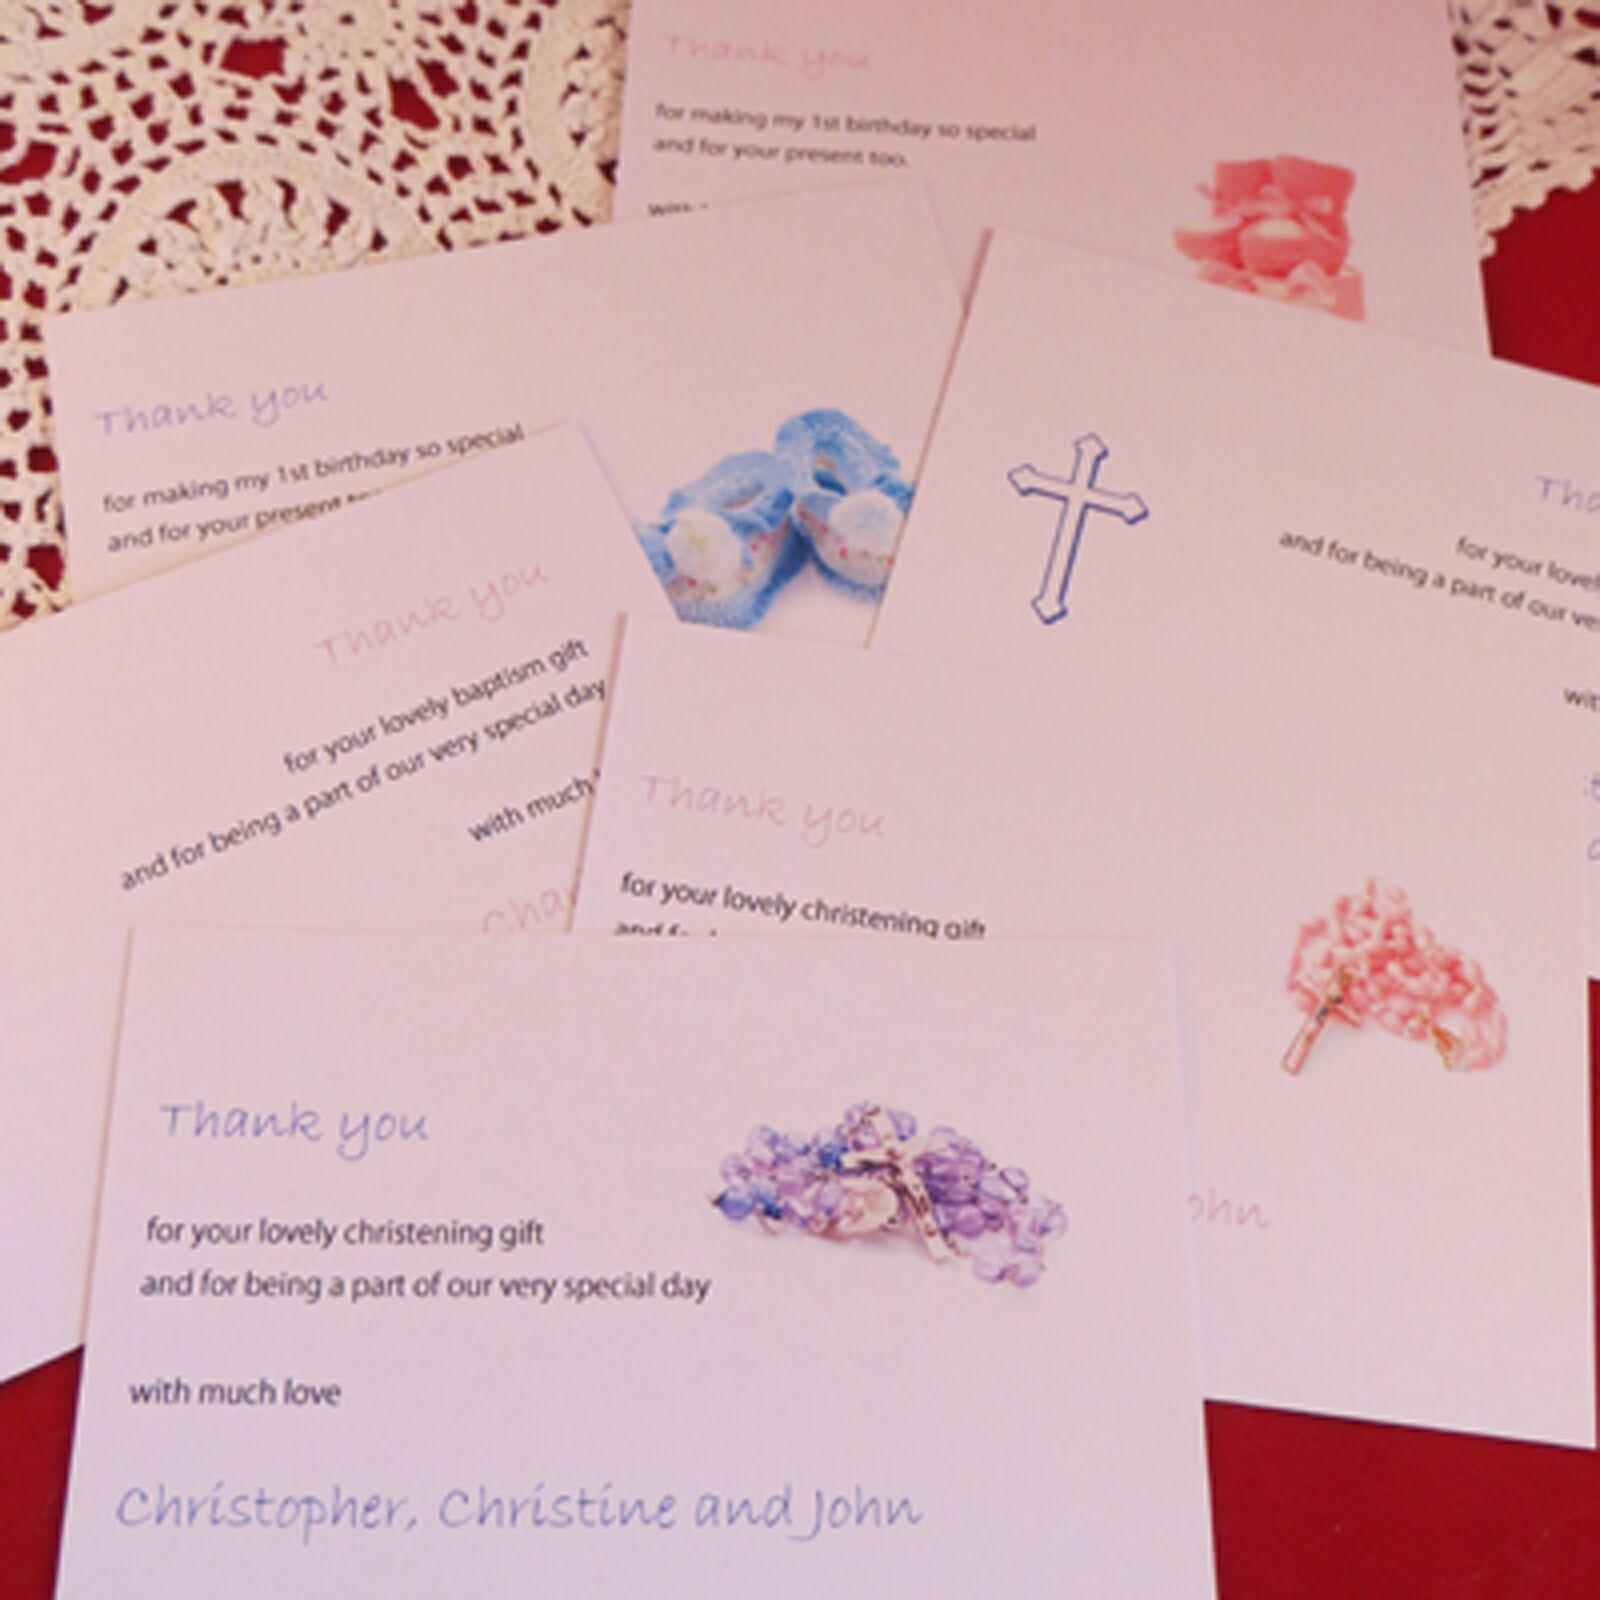 Personalised Thank You Cards Baby Shower Baptism Baptism Baptism Christening Birthday Boy Girl 0c1864